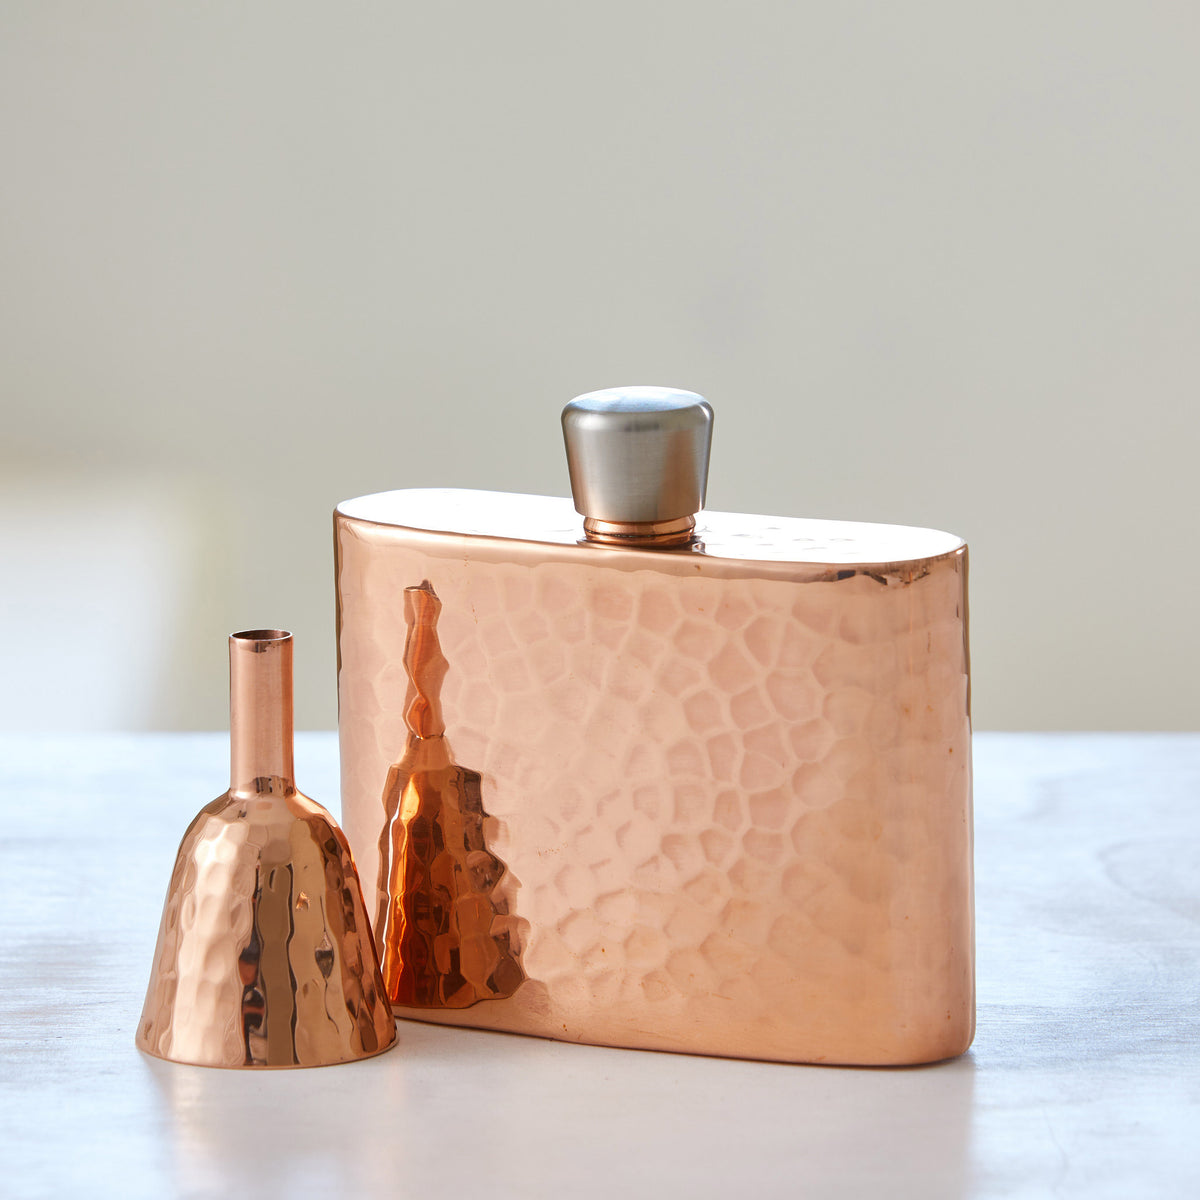 HAND-HAMMERED COPPER FLASKS with FUNNELS